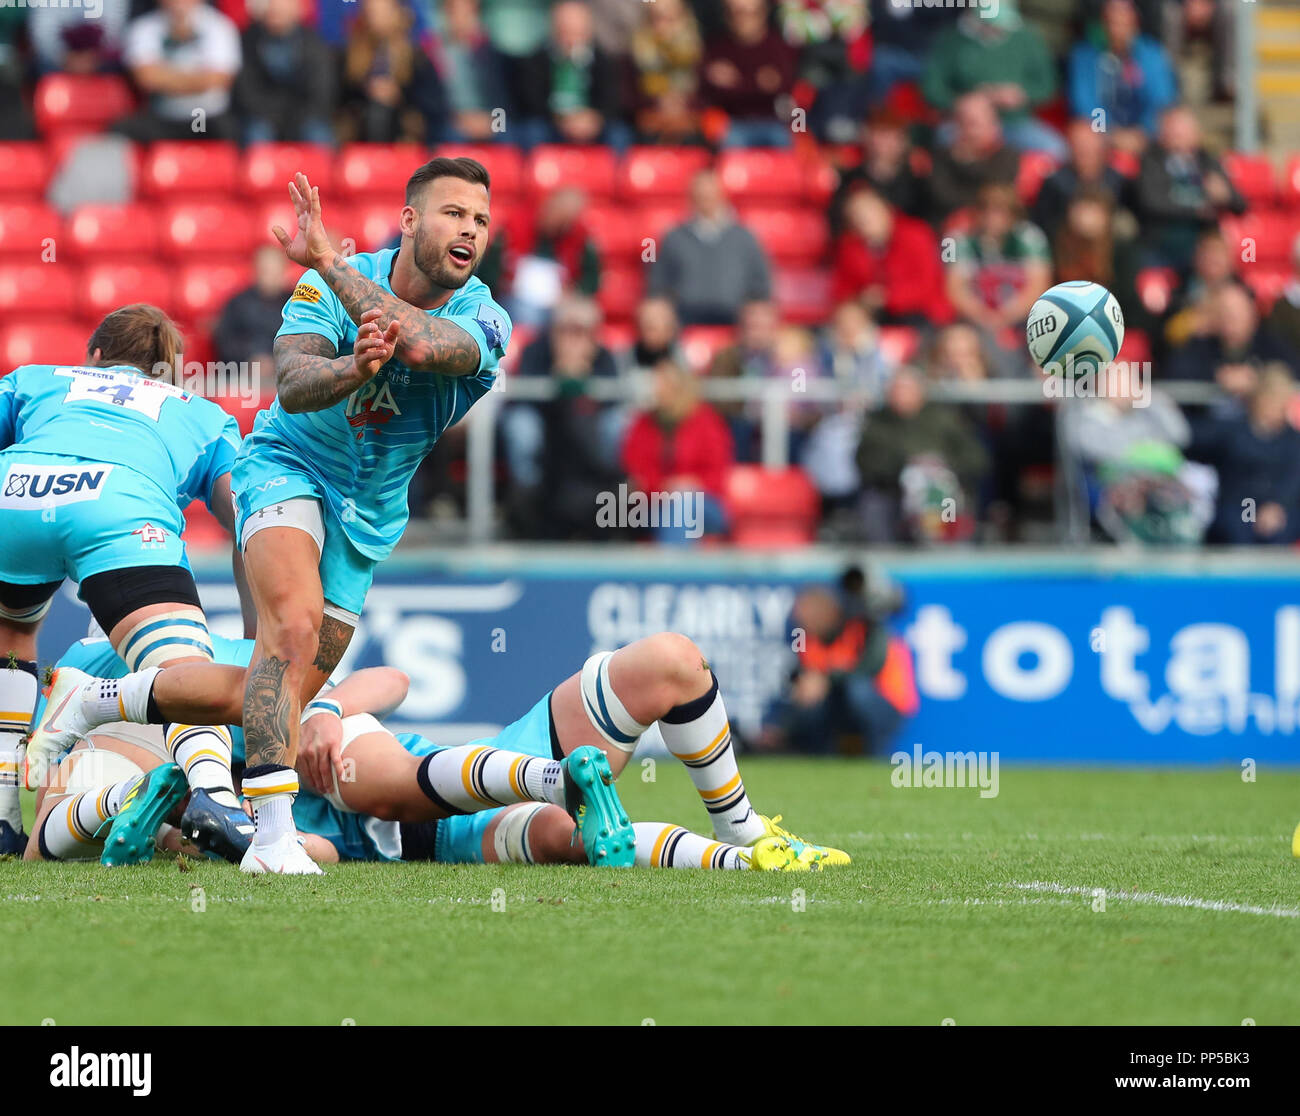 Leicester, UK. 23rd September, 2018. Premiership Rugby Union.     Leicester Tigers v Worcester Warriors  rfc.     Francois Hougaard in action during the Gallagher Premiership game played at Welford Road Stadium, Leicester, England. Credit: Phil Hutchinson/Alamy Live News - Stock Image